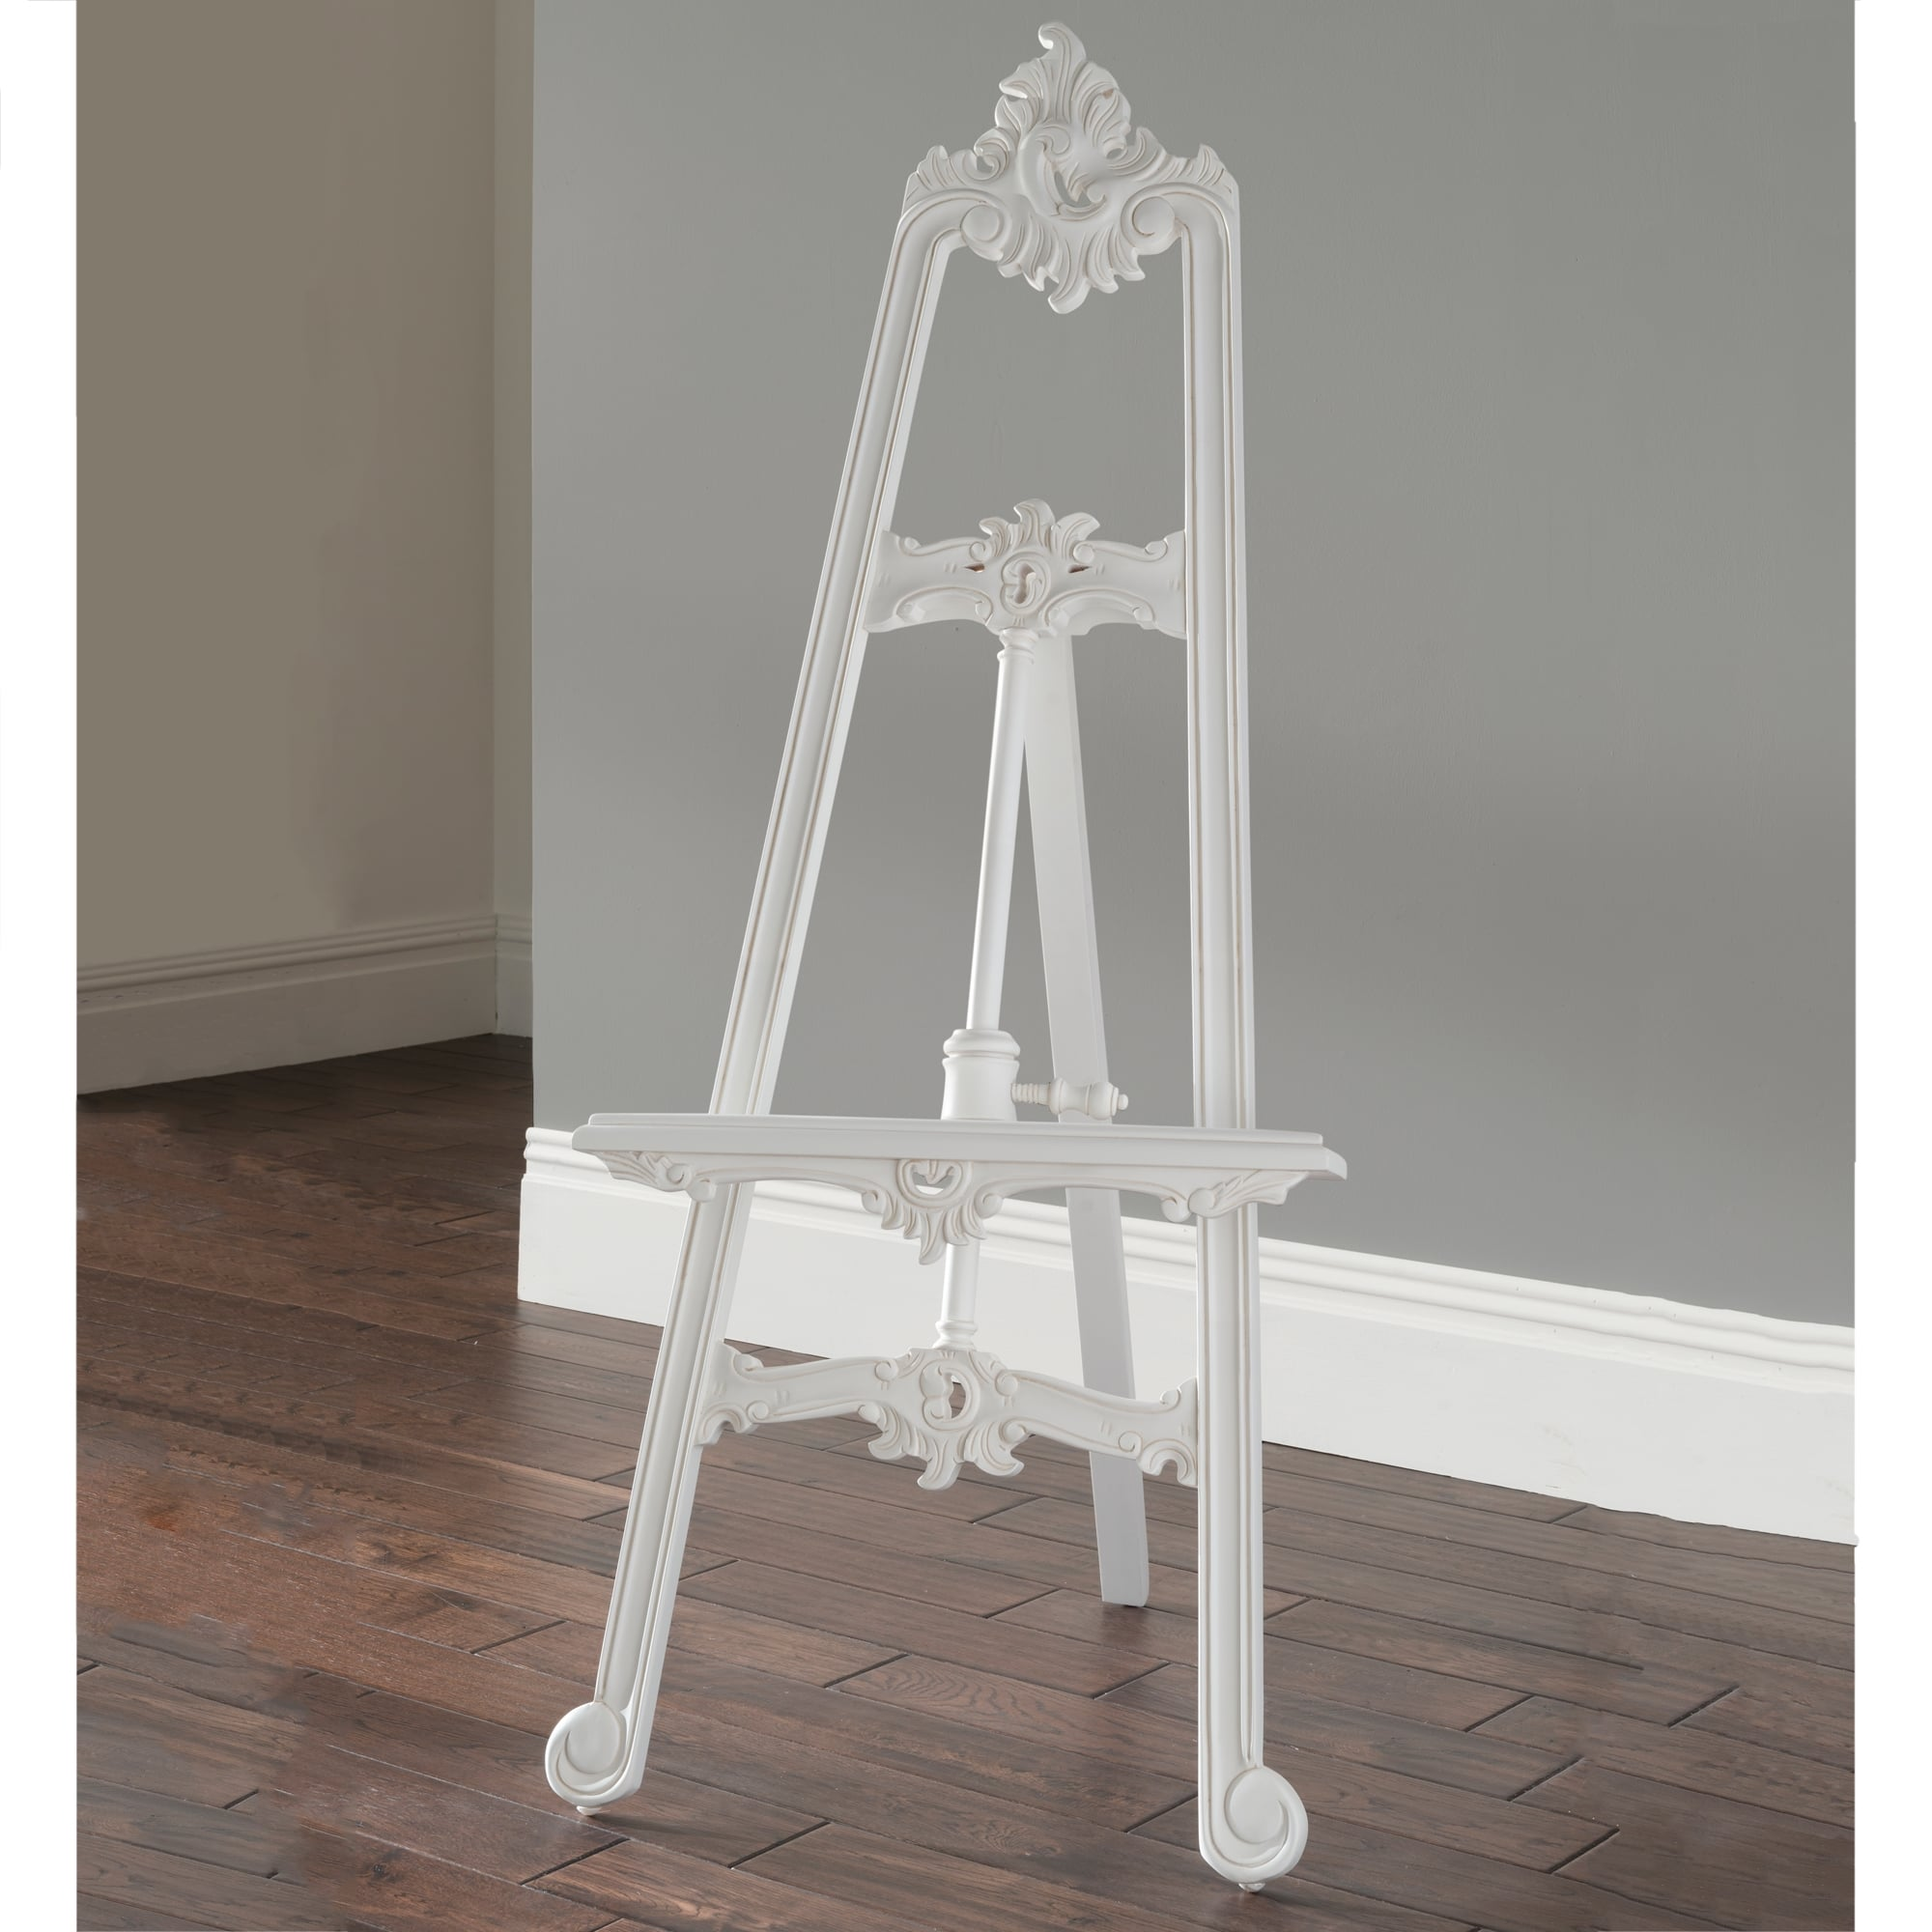 Antique French Style Easel Home Accessories Homesdirect365